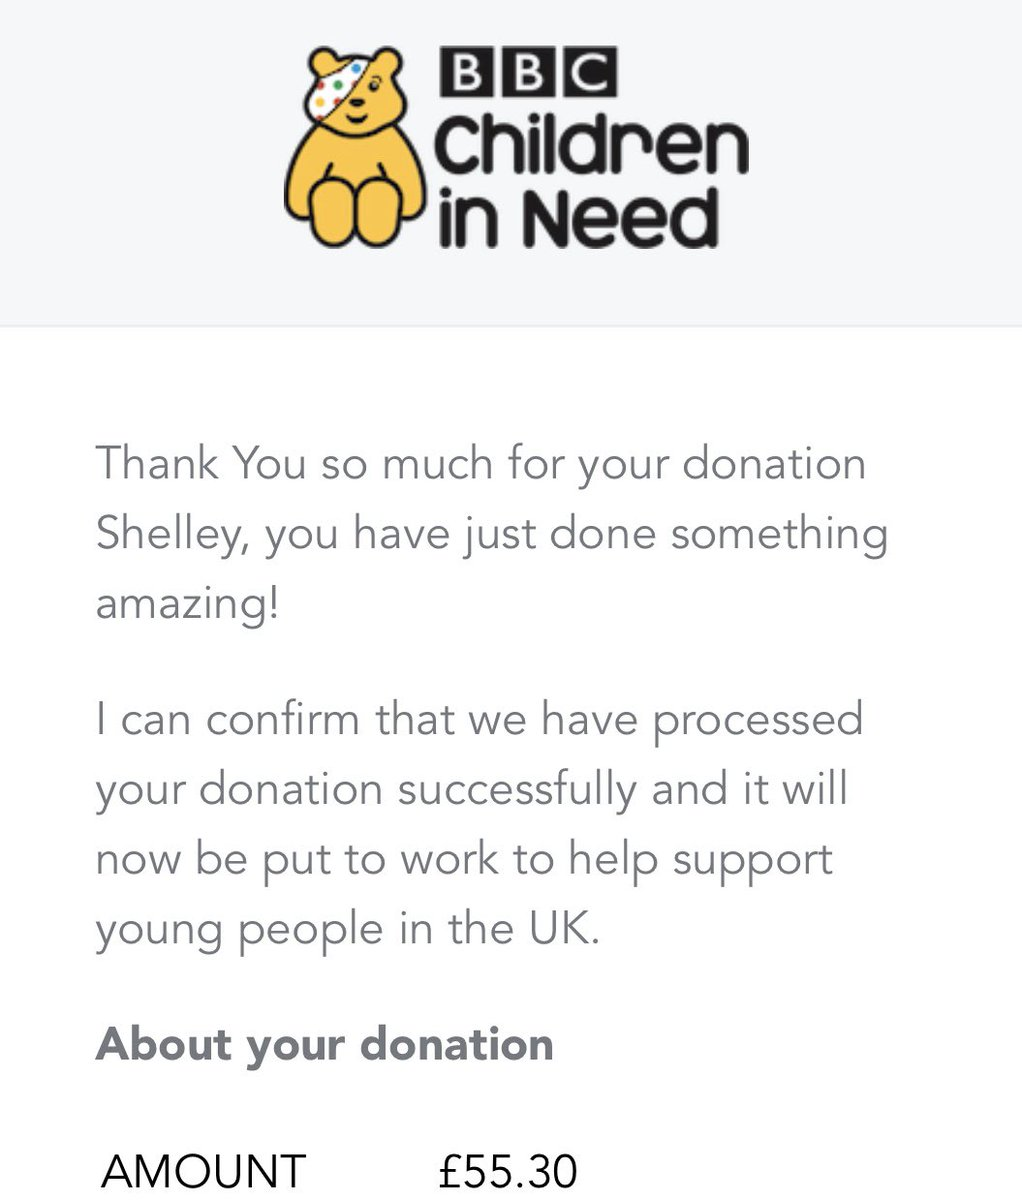 Steppin Out's donation to BBC Children in Need raised from our Odd Socks day!  • #steppinouttheatreschool #steppinout #thestreschool #bbc #bbcchildreninneed #fundraiser<br>http://pic.twitter.com/pikfIDh8Uk